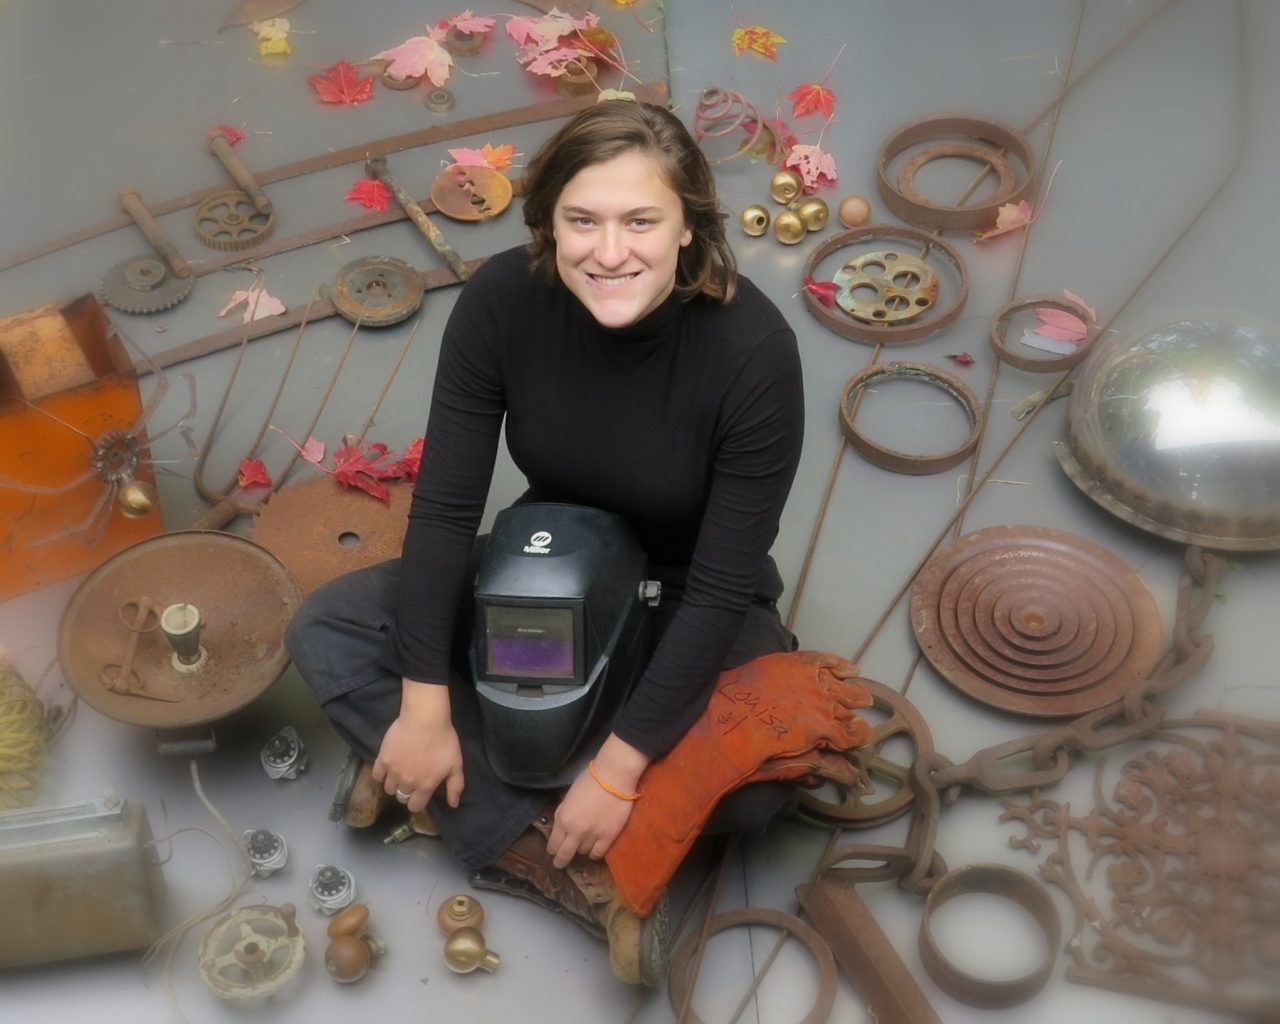 Image: Louisa sitting in the middle of rusted metal